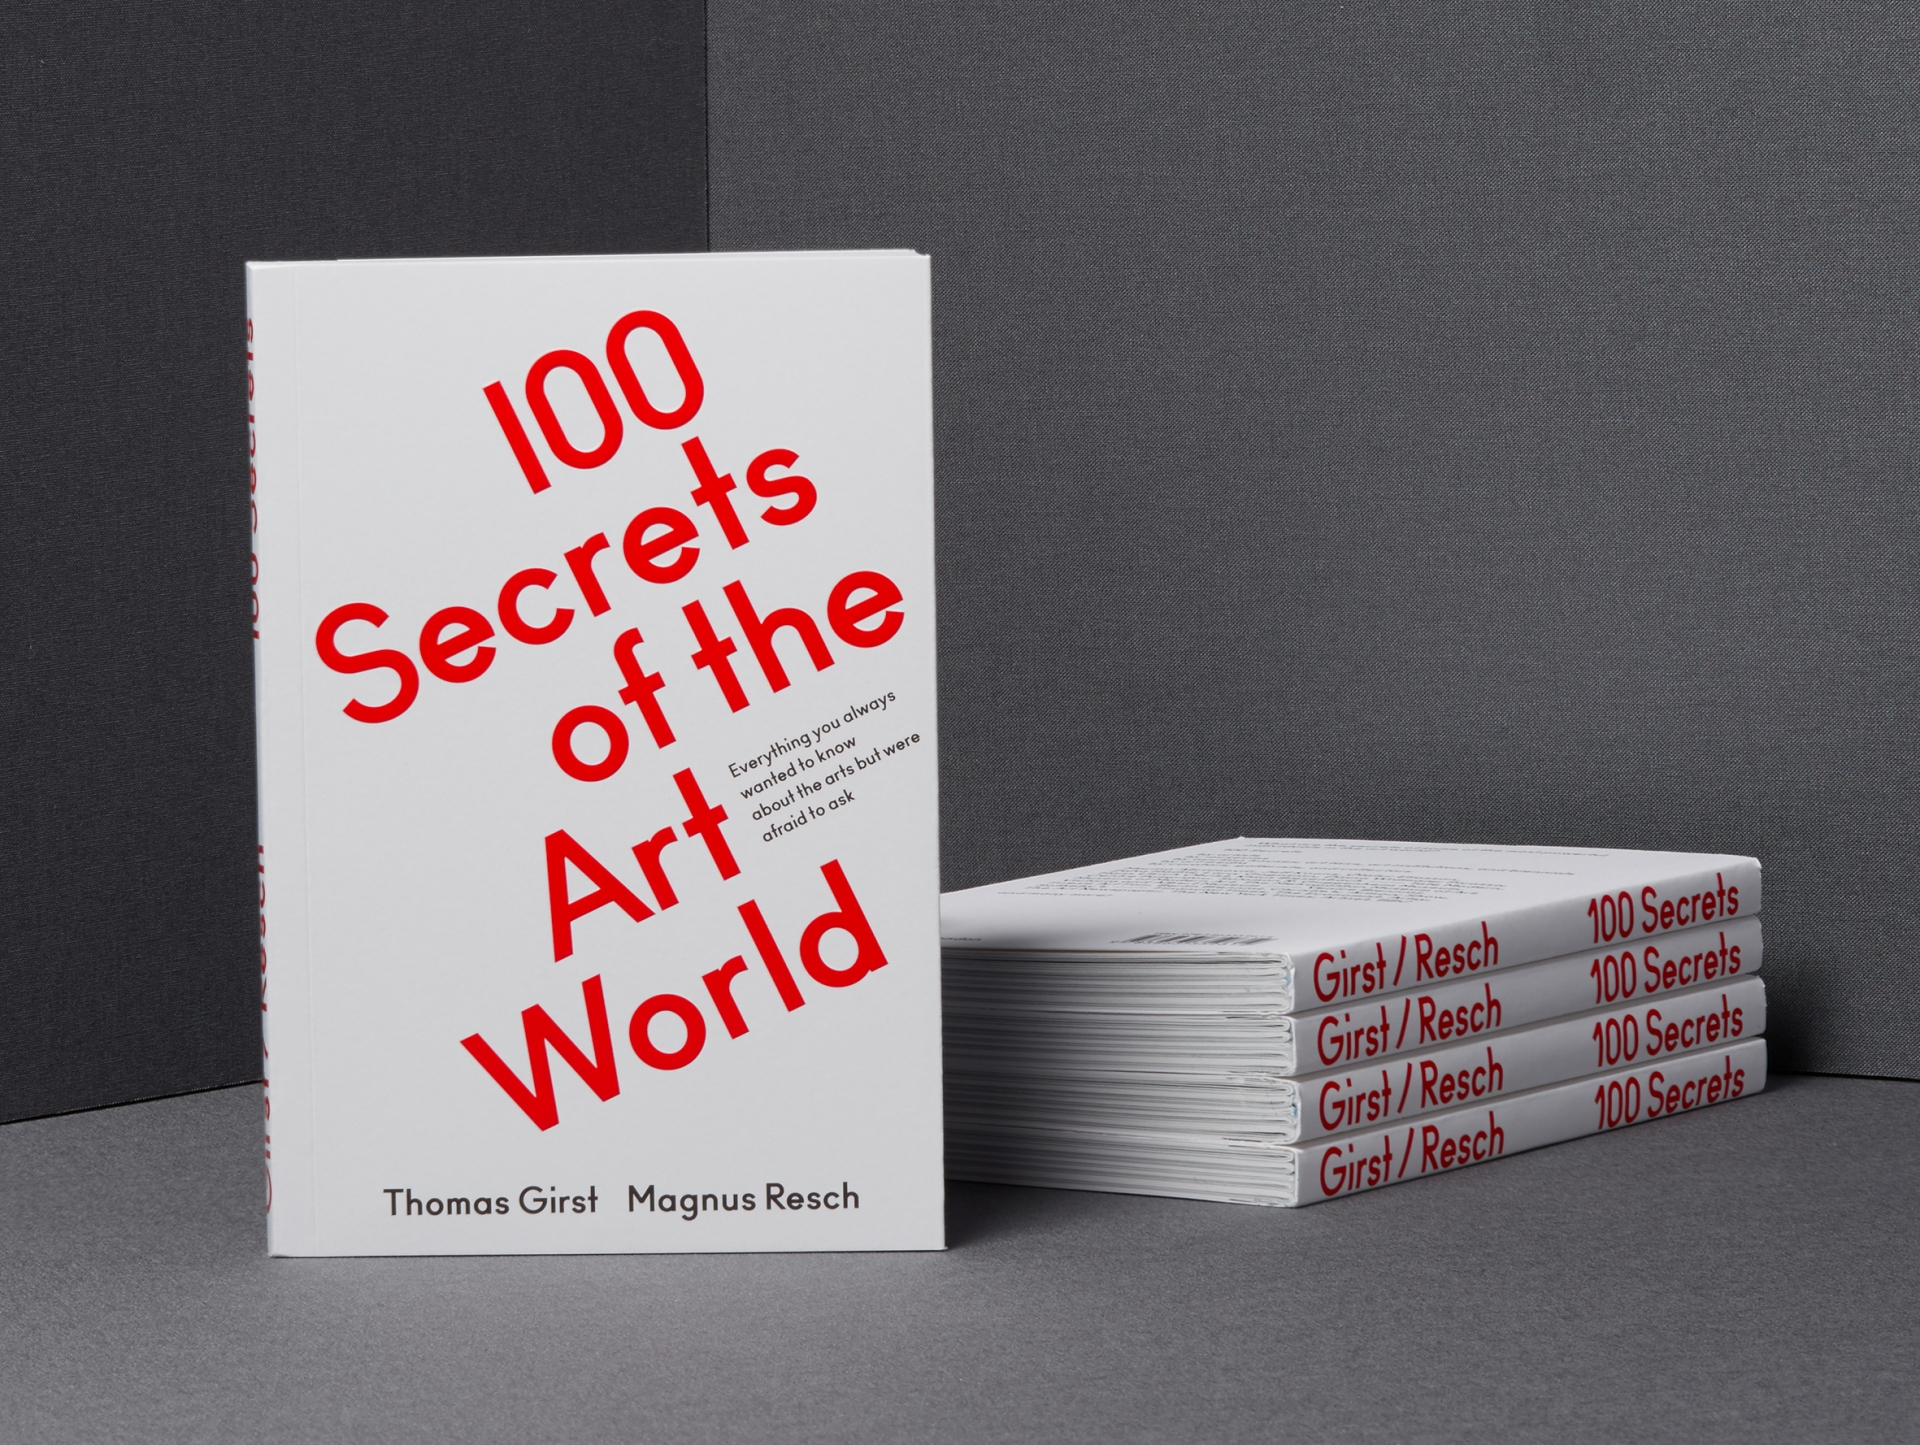 Daniela Wiesemann 100 Secrets of the Art World